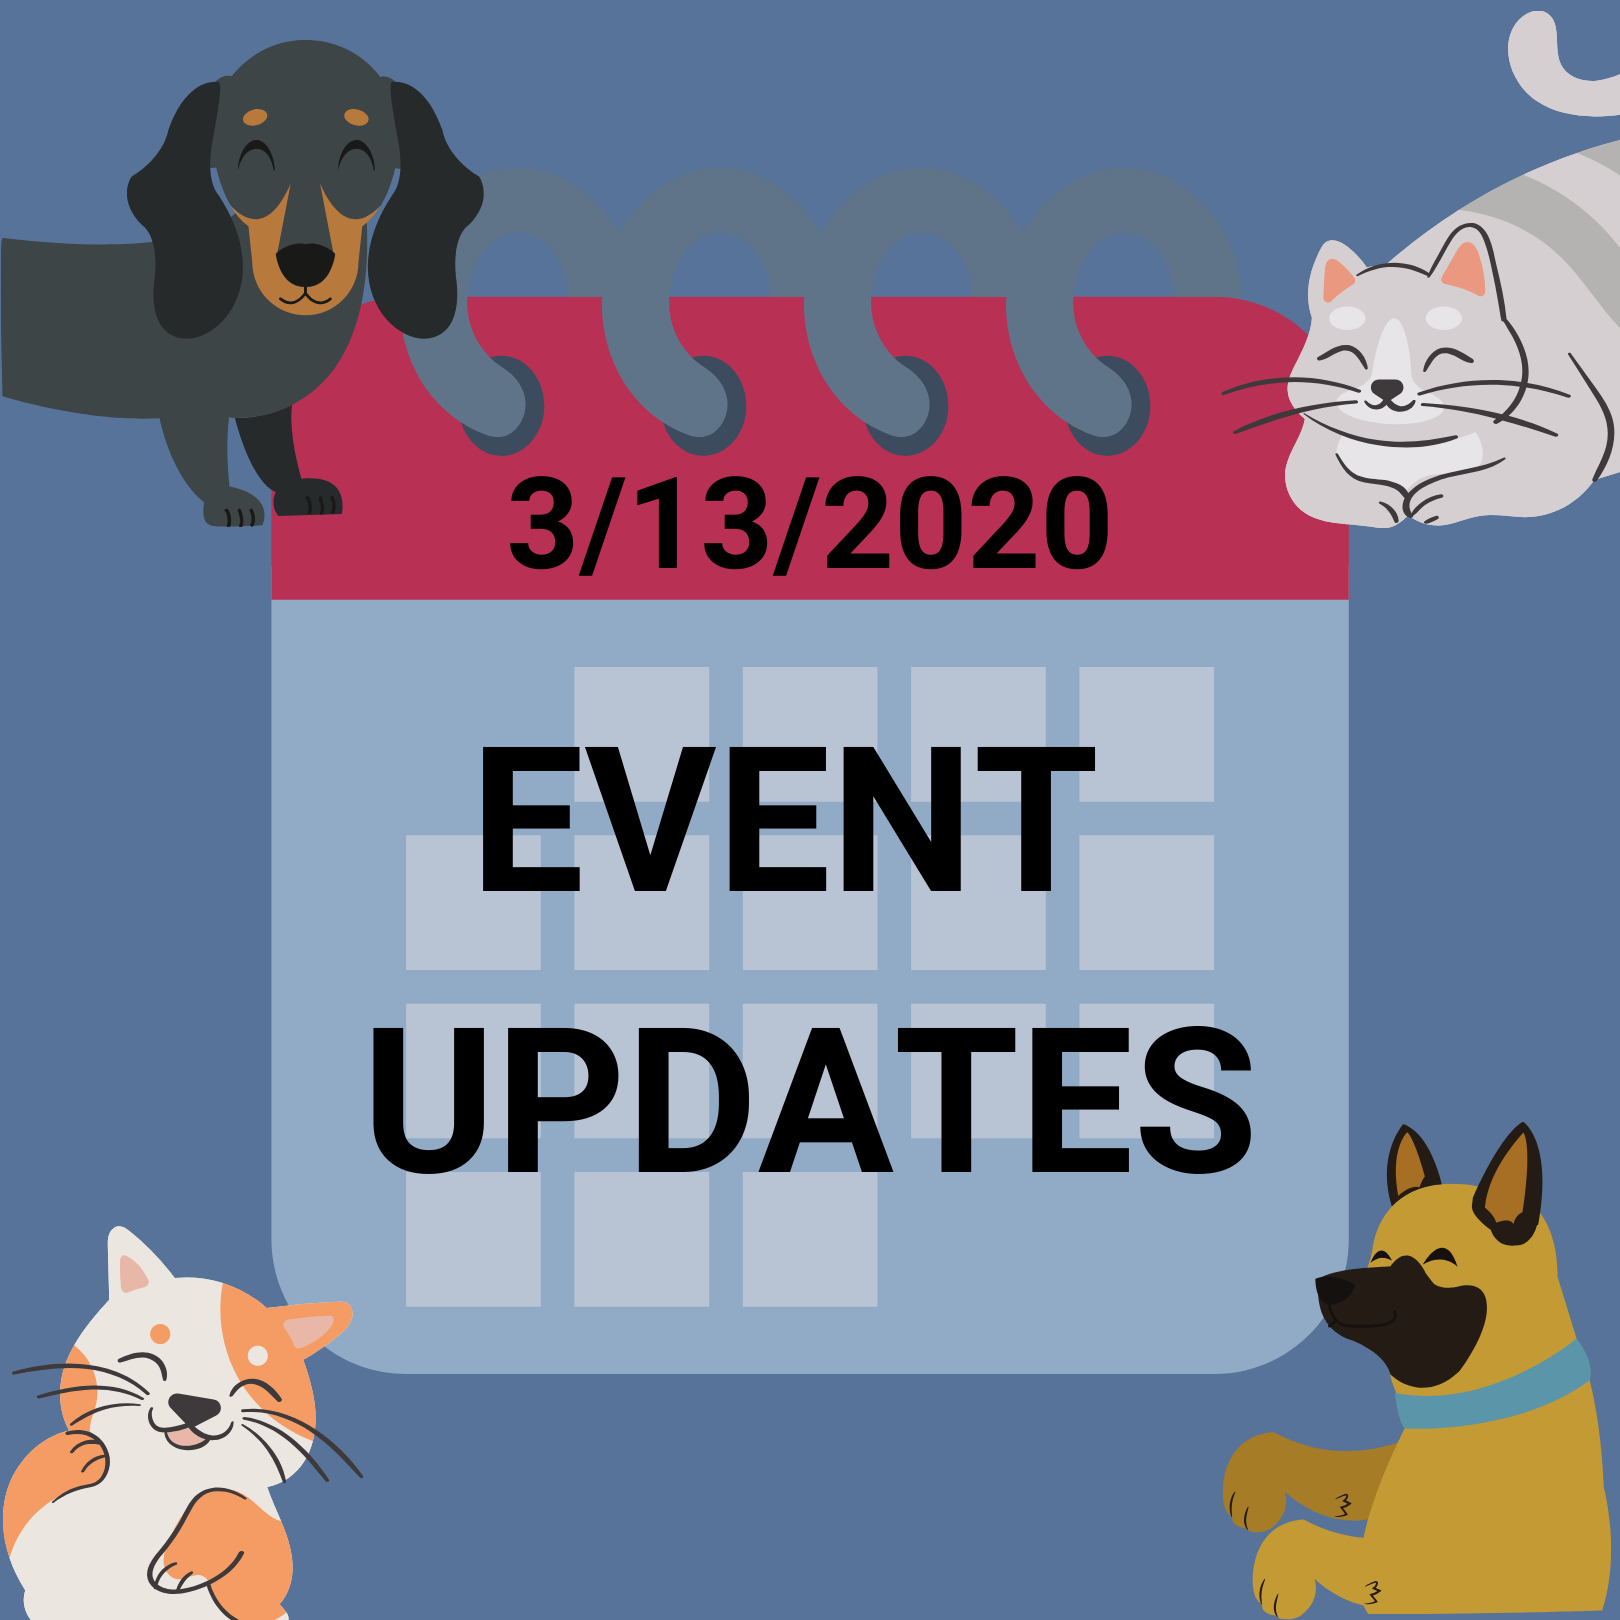 Events Update